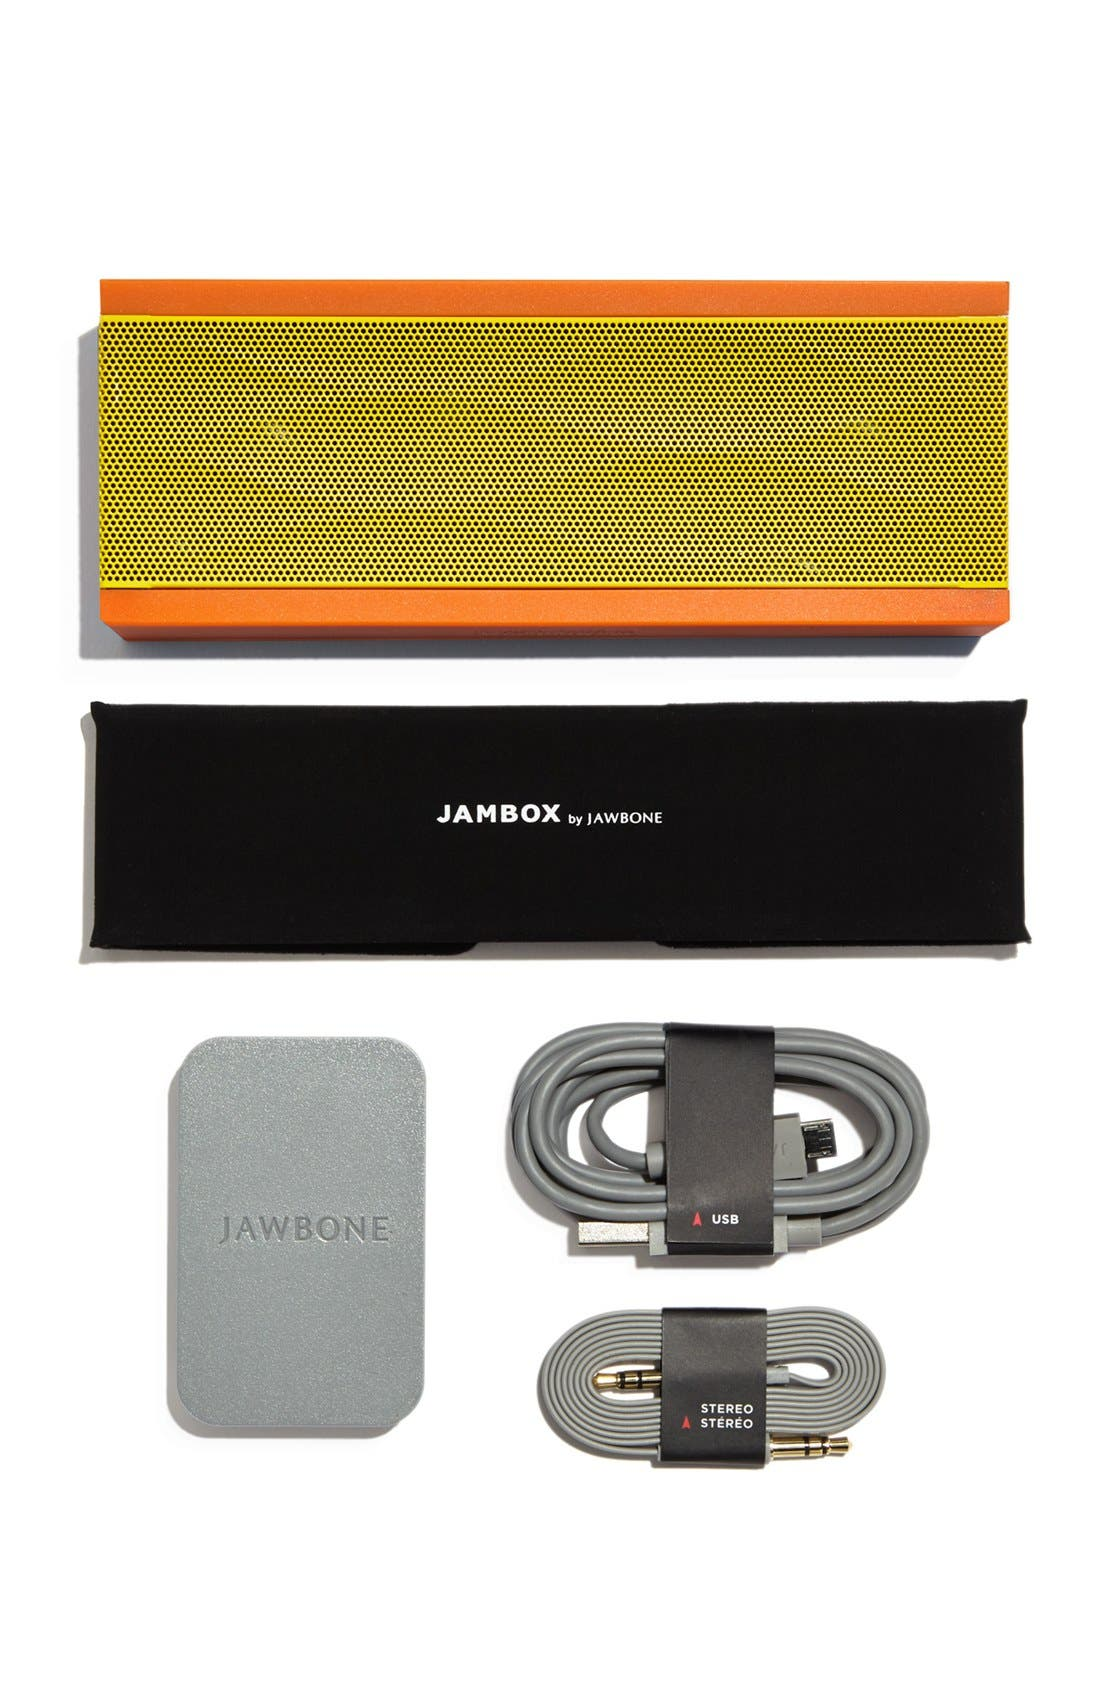 Alternate Image 1 Selected - Jawbone 'JAMBOX' Portable Wireless Speaker